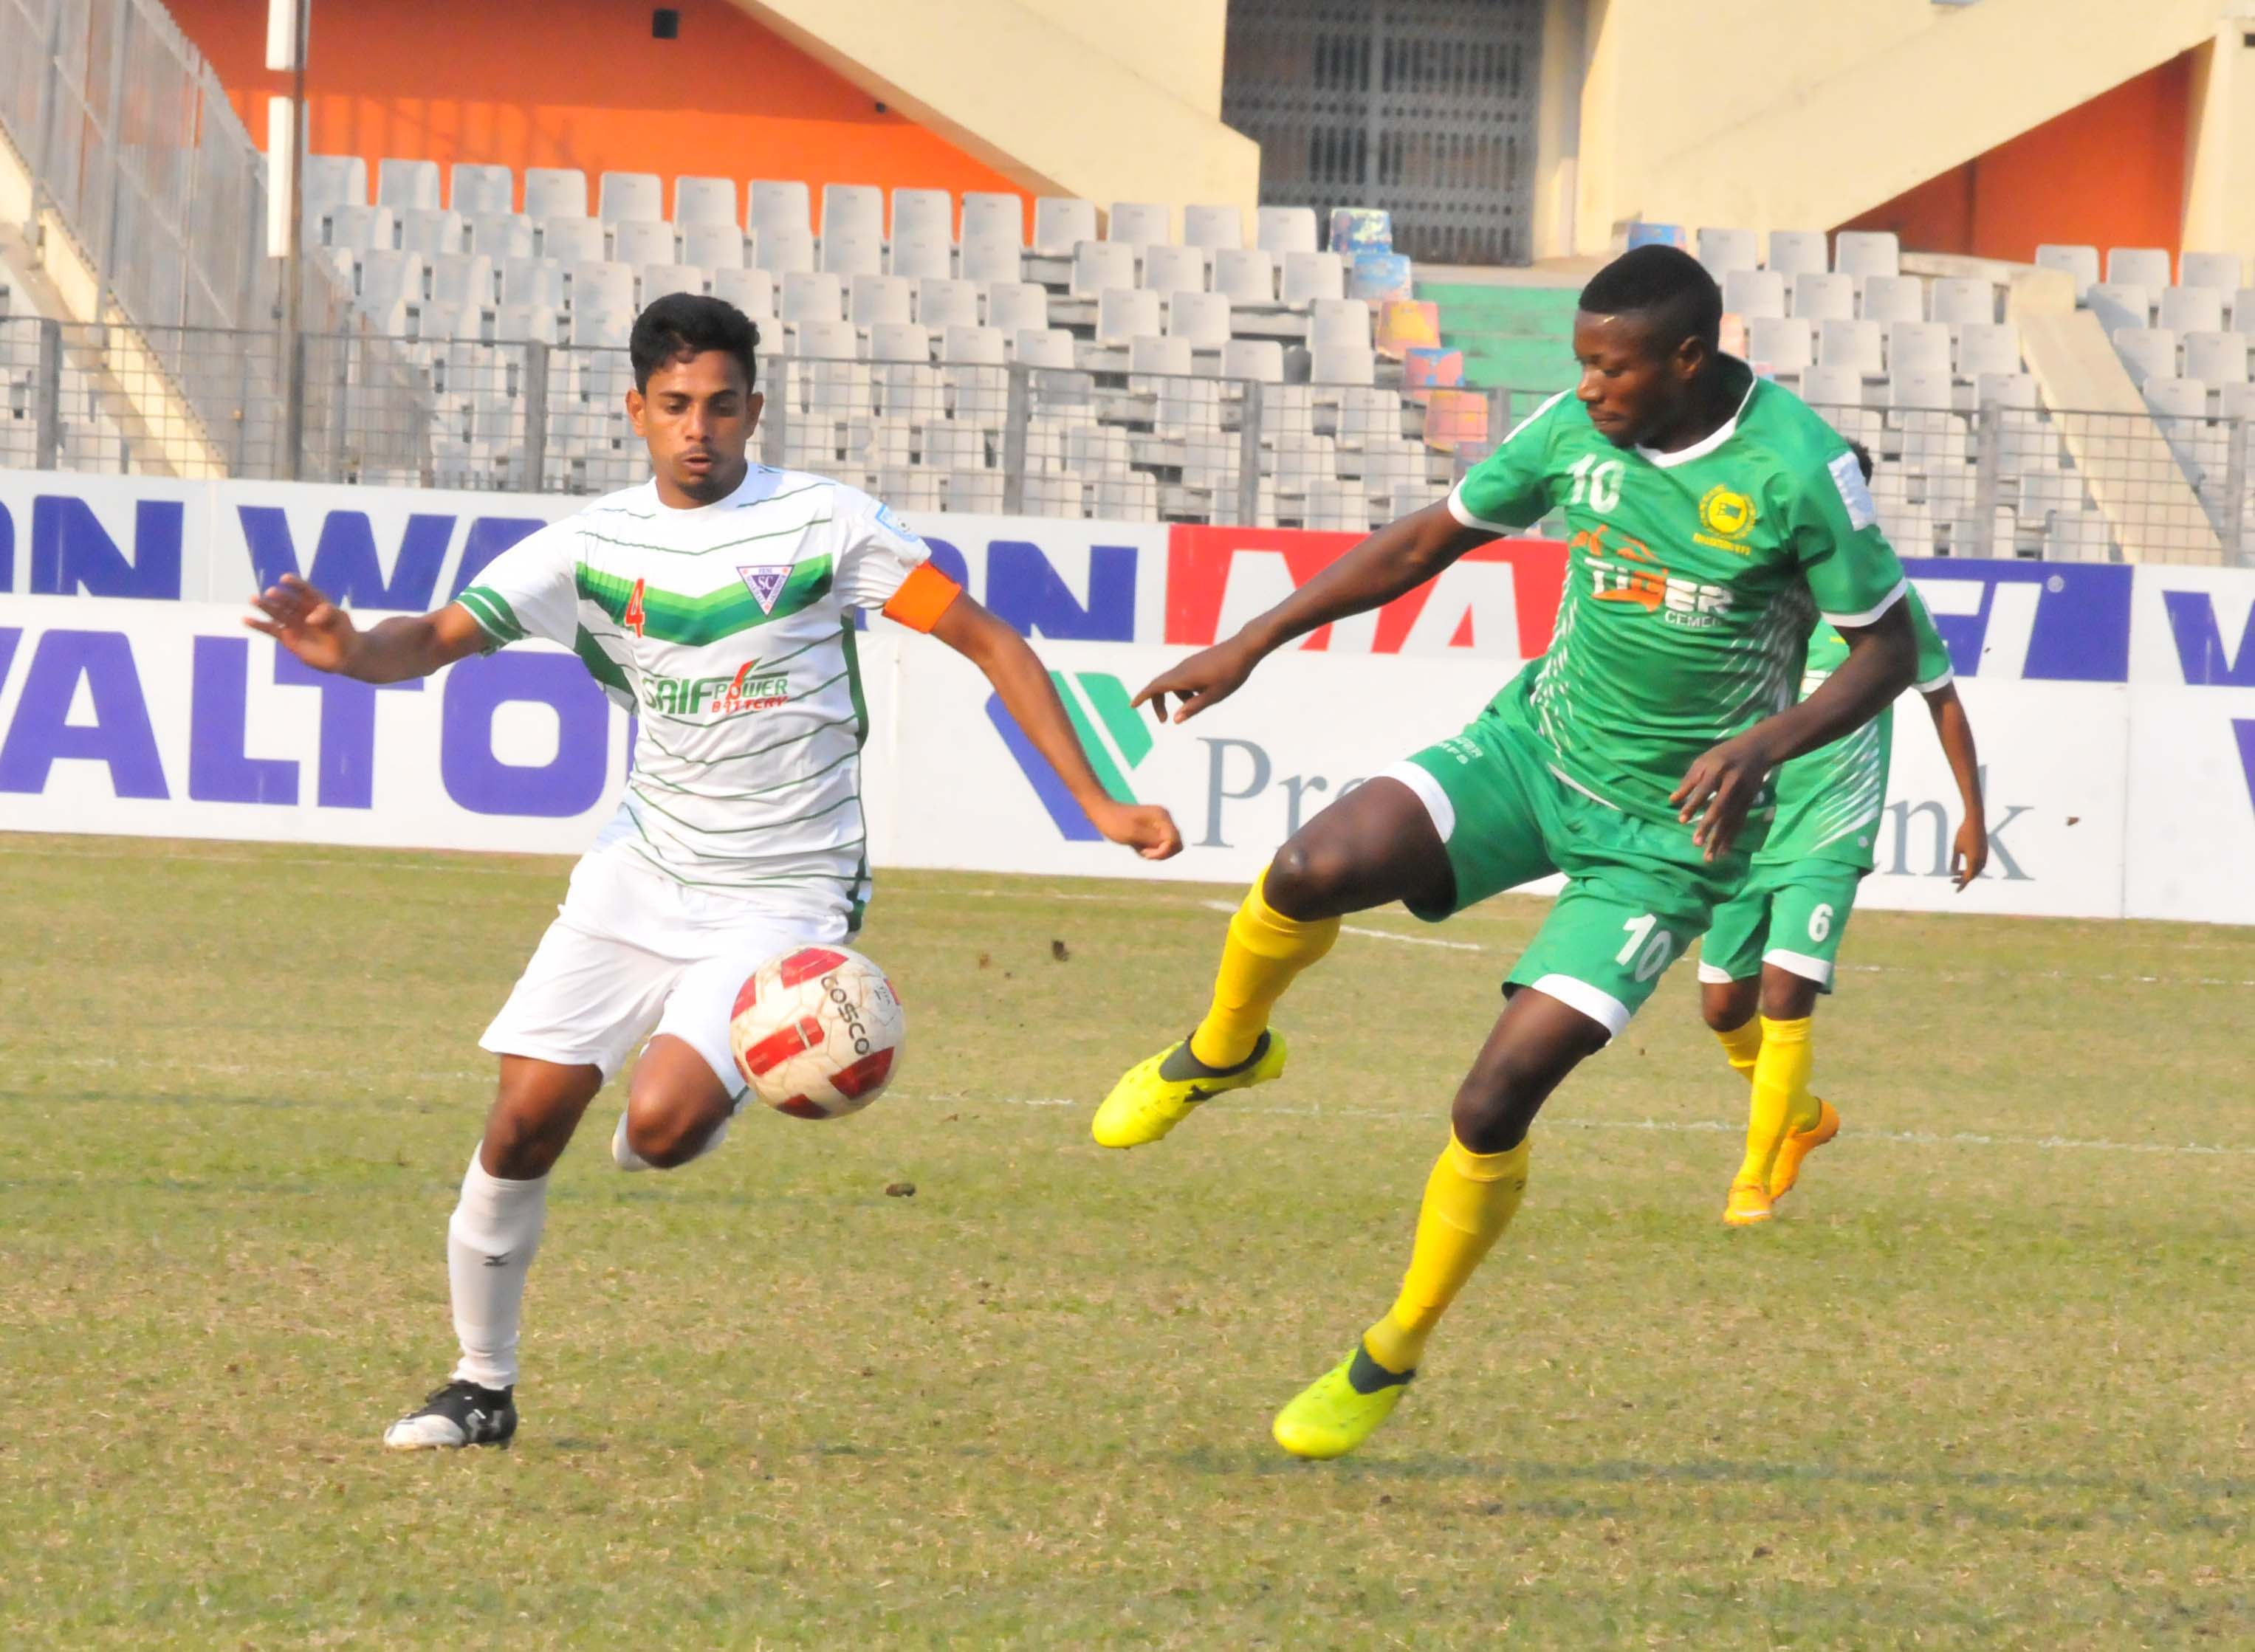 A view of the football match of the Walton Independence Cup between Rahmatganj MFS and Nofel Sporting Club at the Bangabandhu National Stadium on Sunday. Rahmatganj defeated Nofel by three goals to nil.